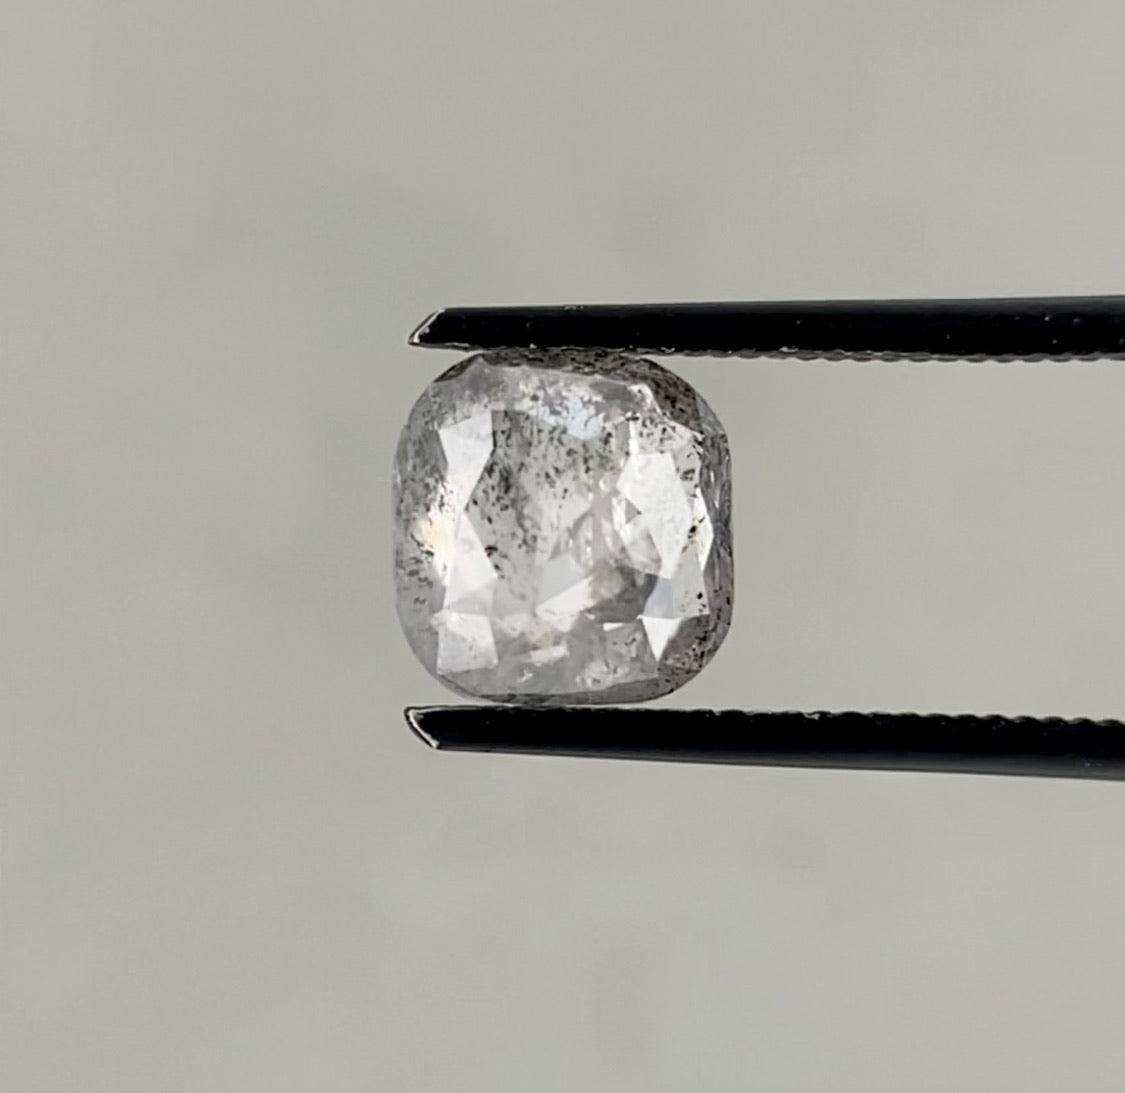 1.99ct Rose Cut Cushion Salt & Pepper held in black diamond tweezers above a grey background